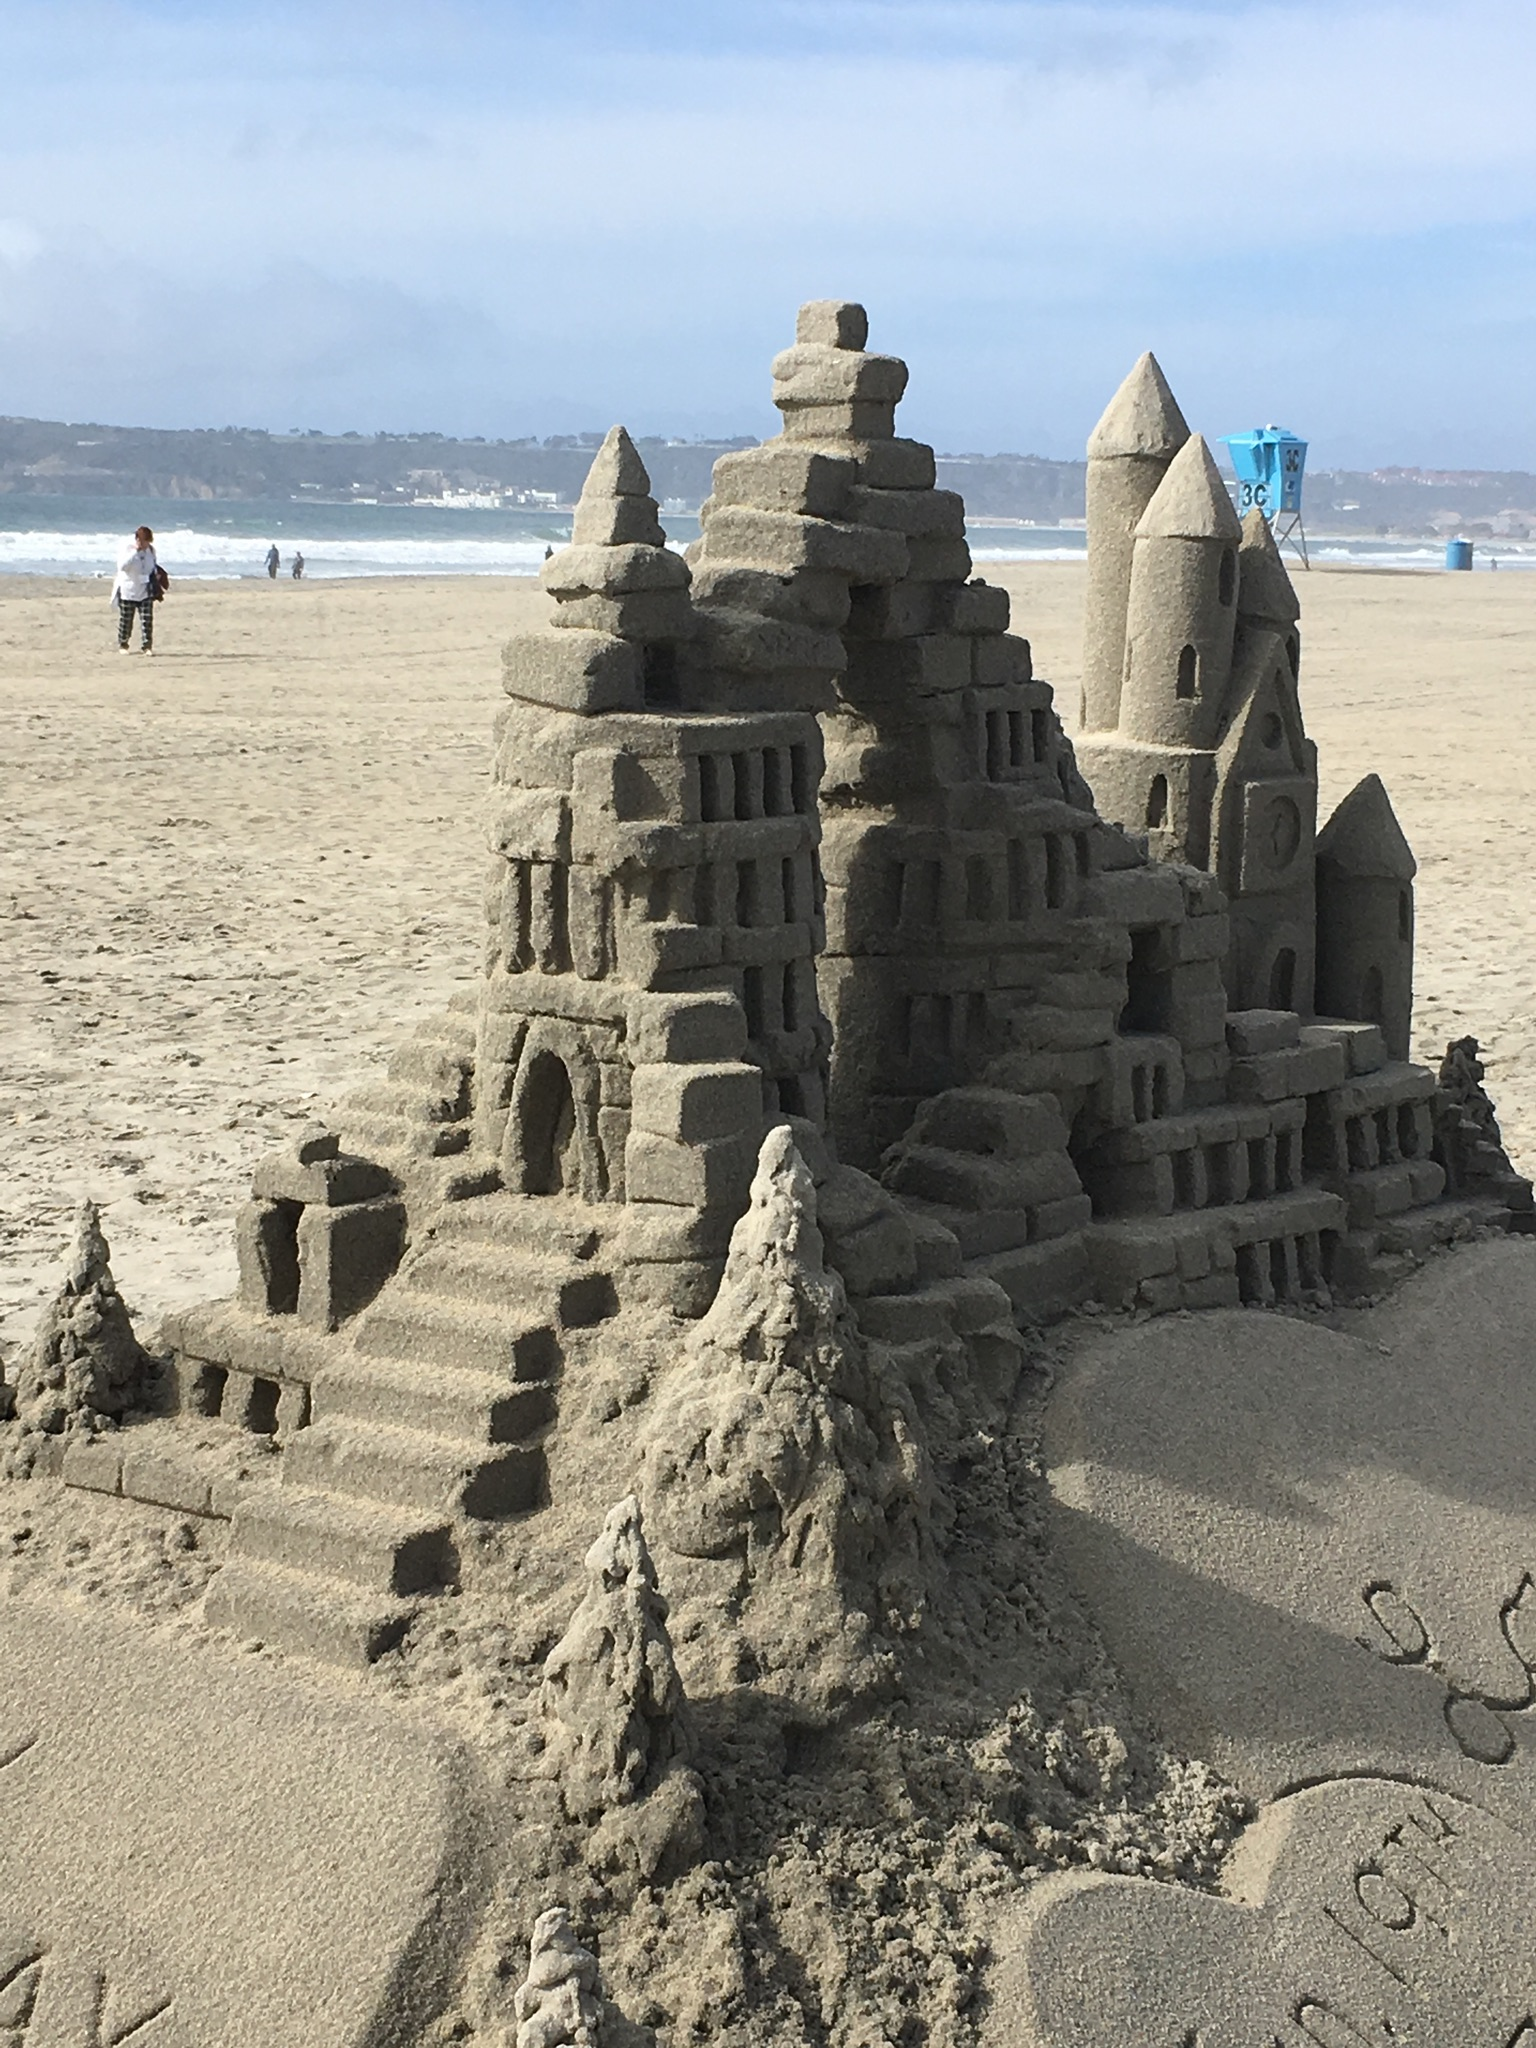 Sand castle on the beach at Hotel Del.